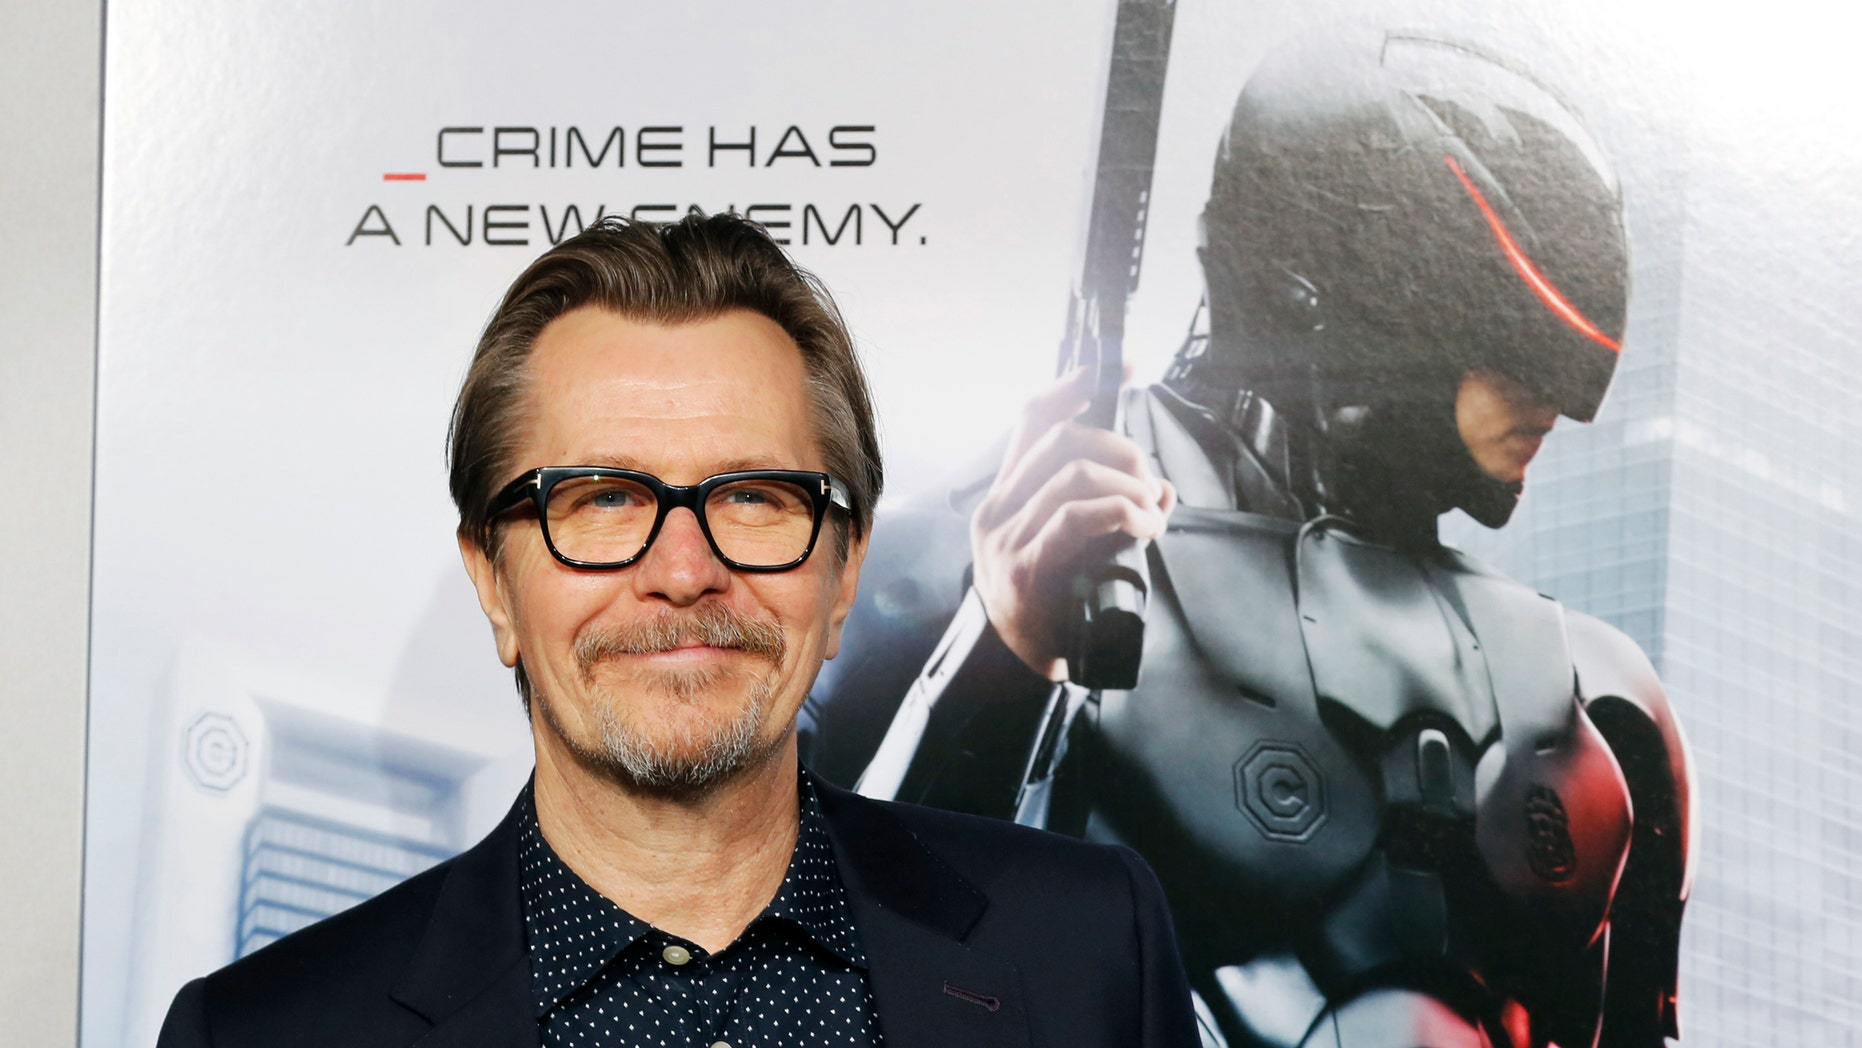 """Actor Gary Oldman one of the stars of film """"Robocop"""" arrive for the film's premiere in Hollywood, California February 10, 2014. REUTERS/Fred Prouser (UNITED STATES - Tags: ENTERTAINMENT PROFILE) - RTX18KF4"""